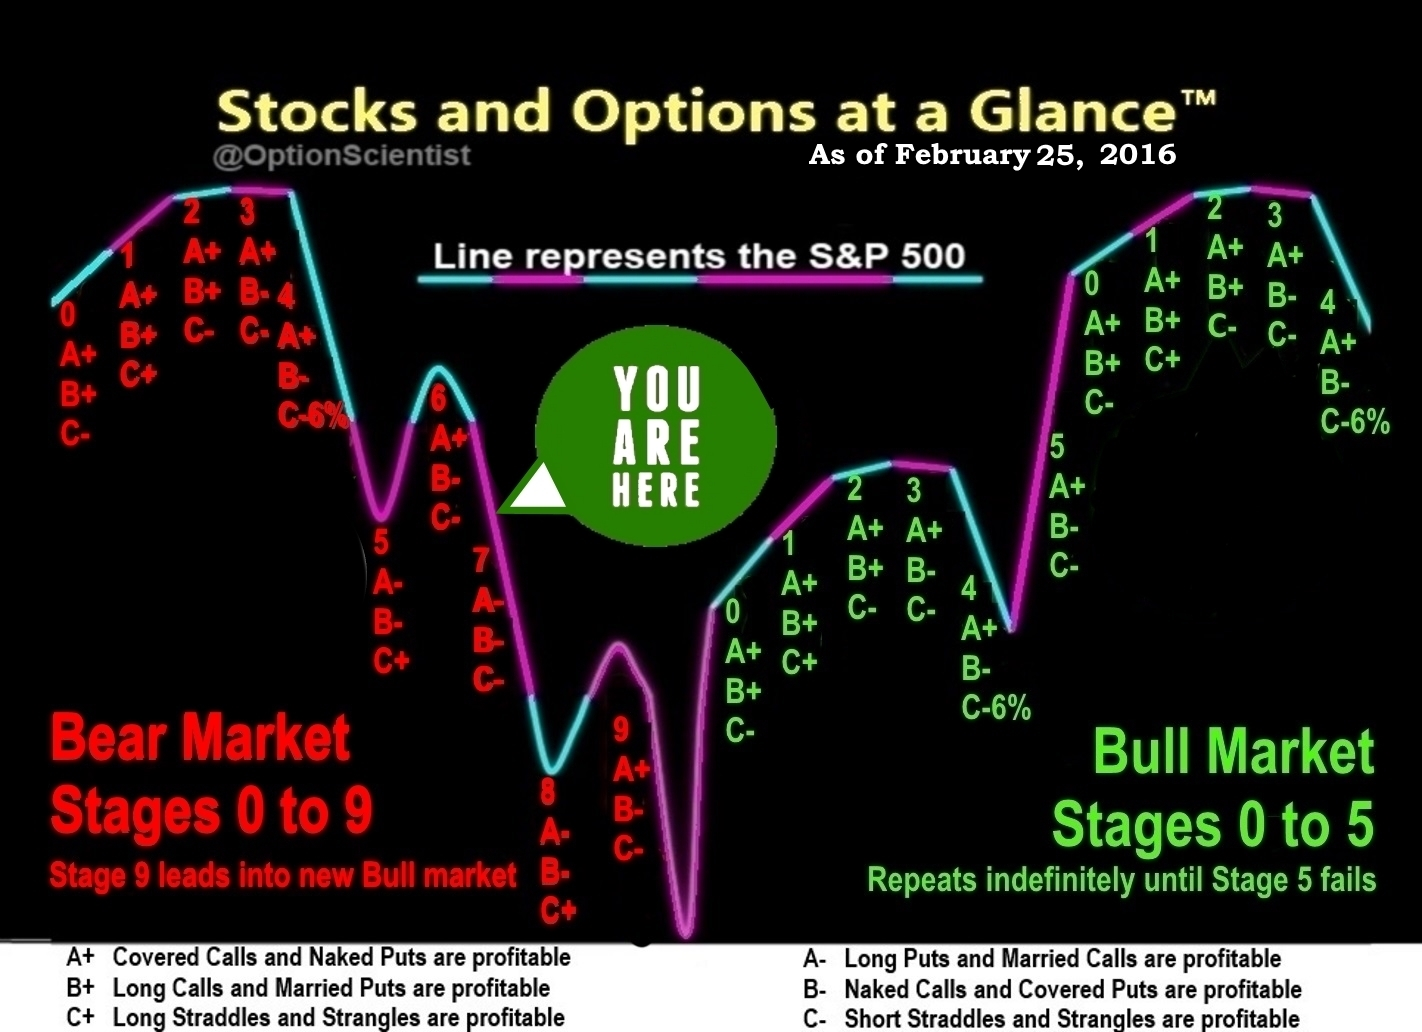 Stocks and Options at a Glance 02-25-16